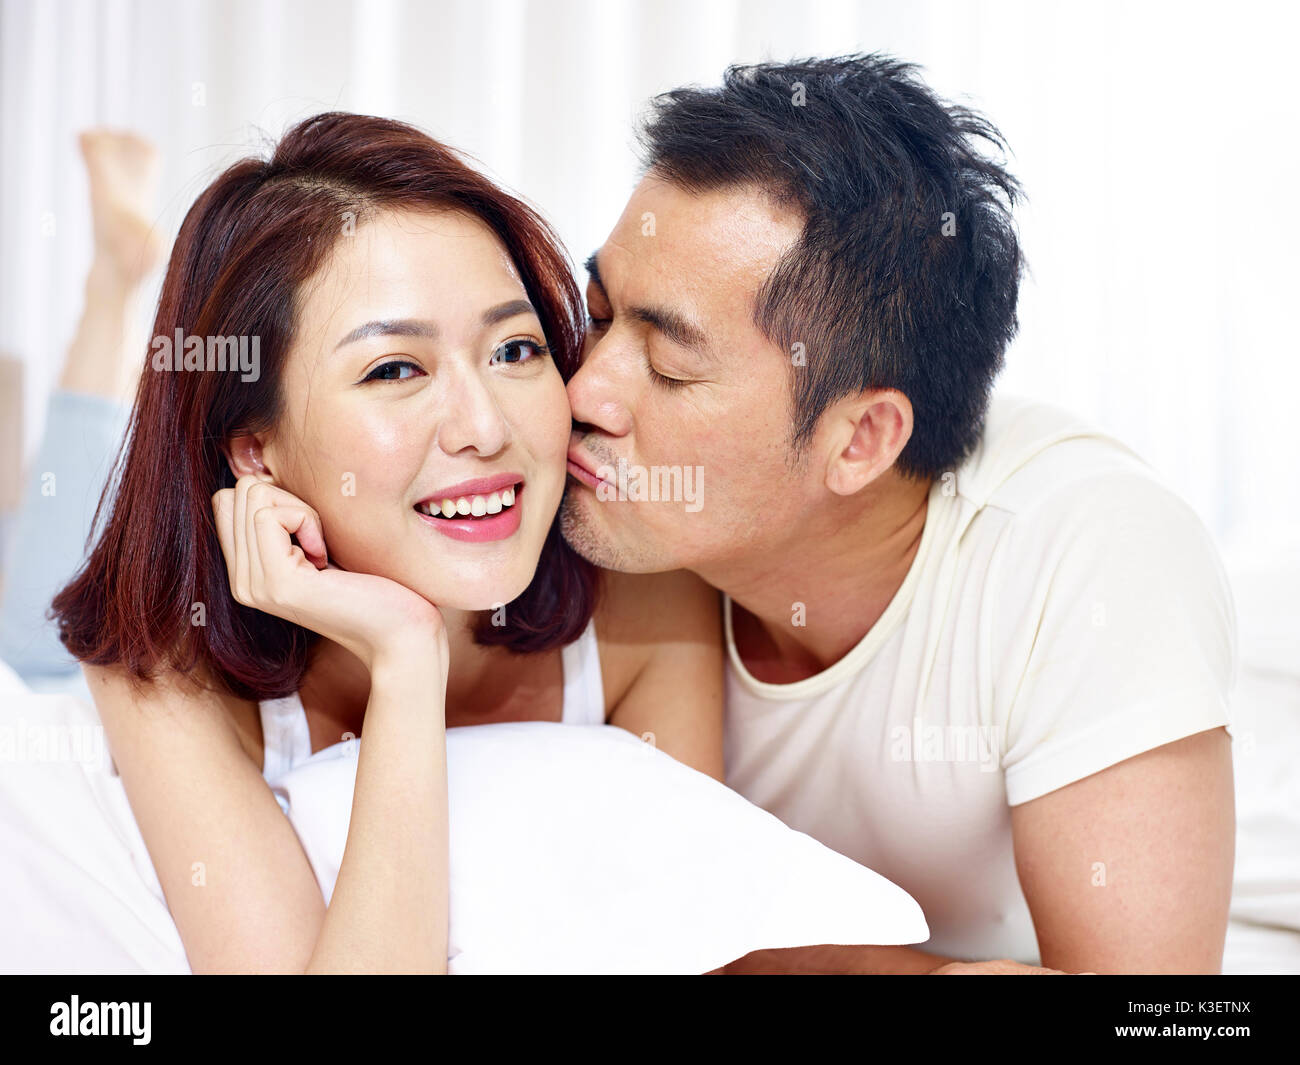 Asiatische Dating-Seiten Bilder Beste Dating-Websites badoo